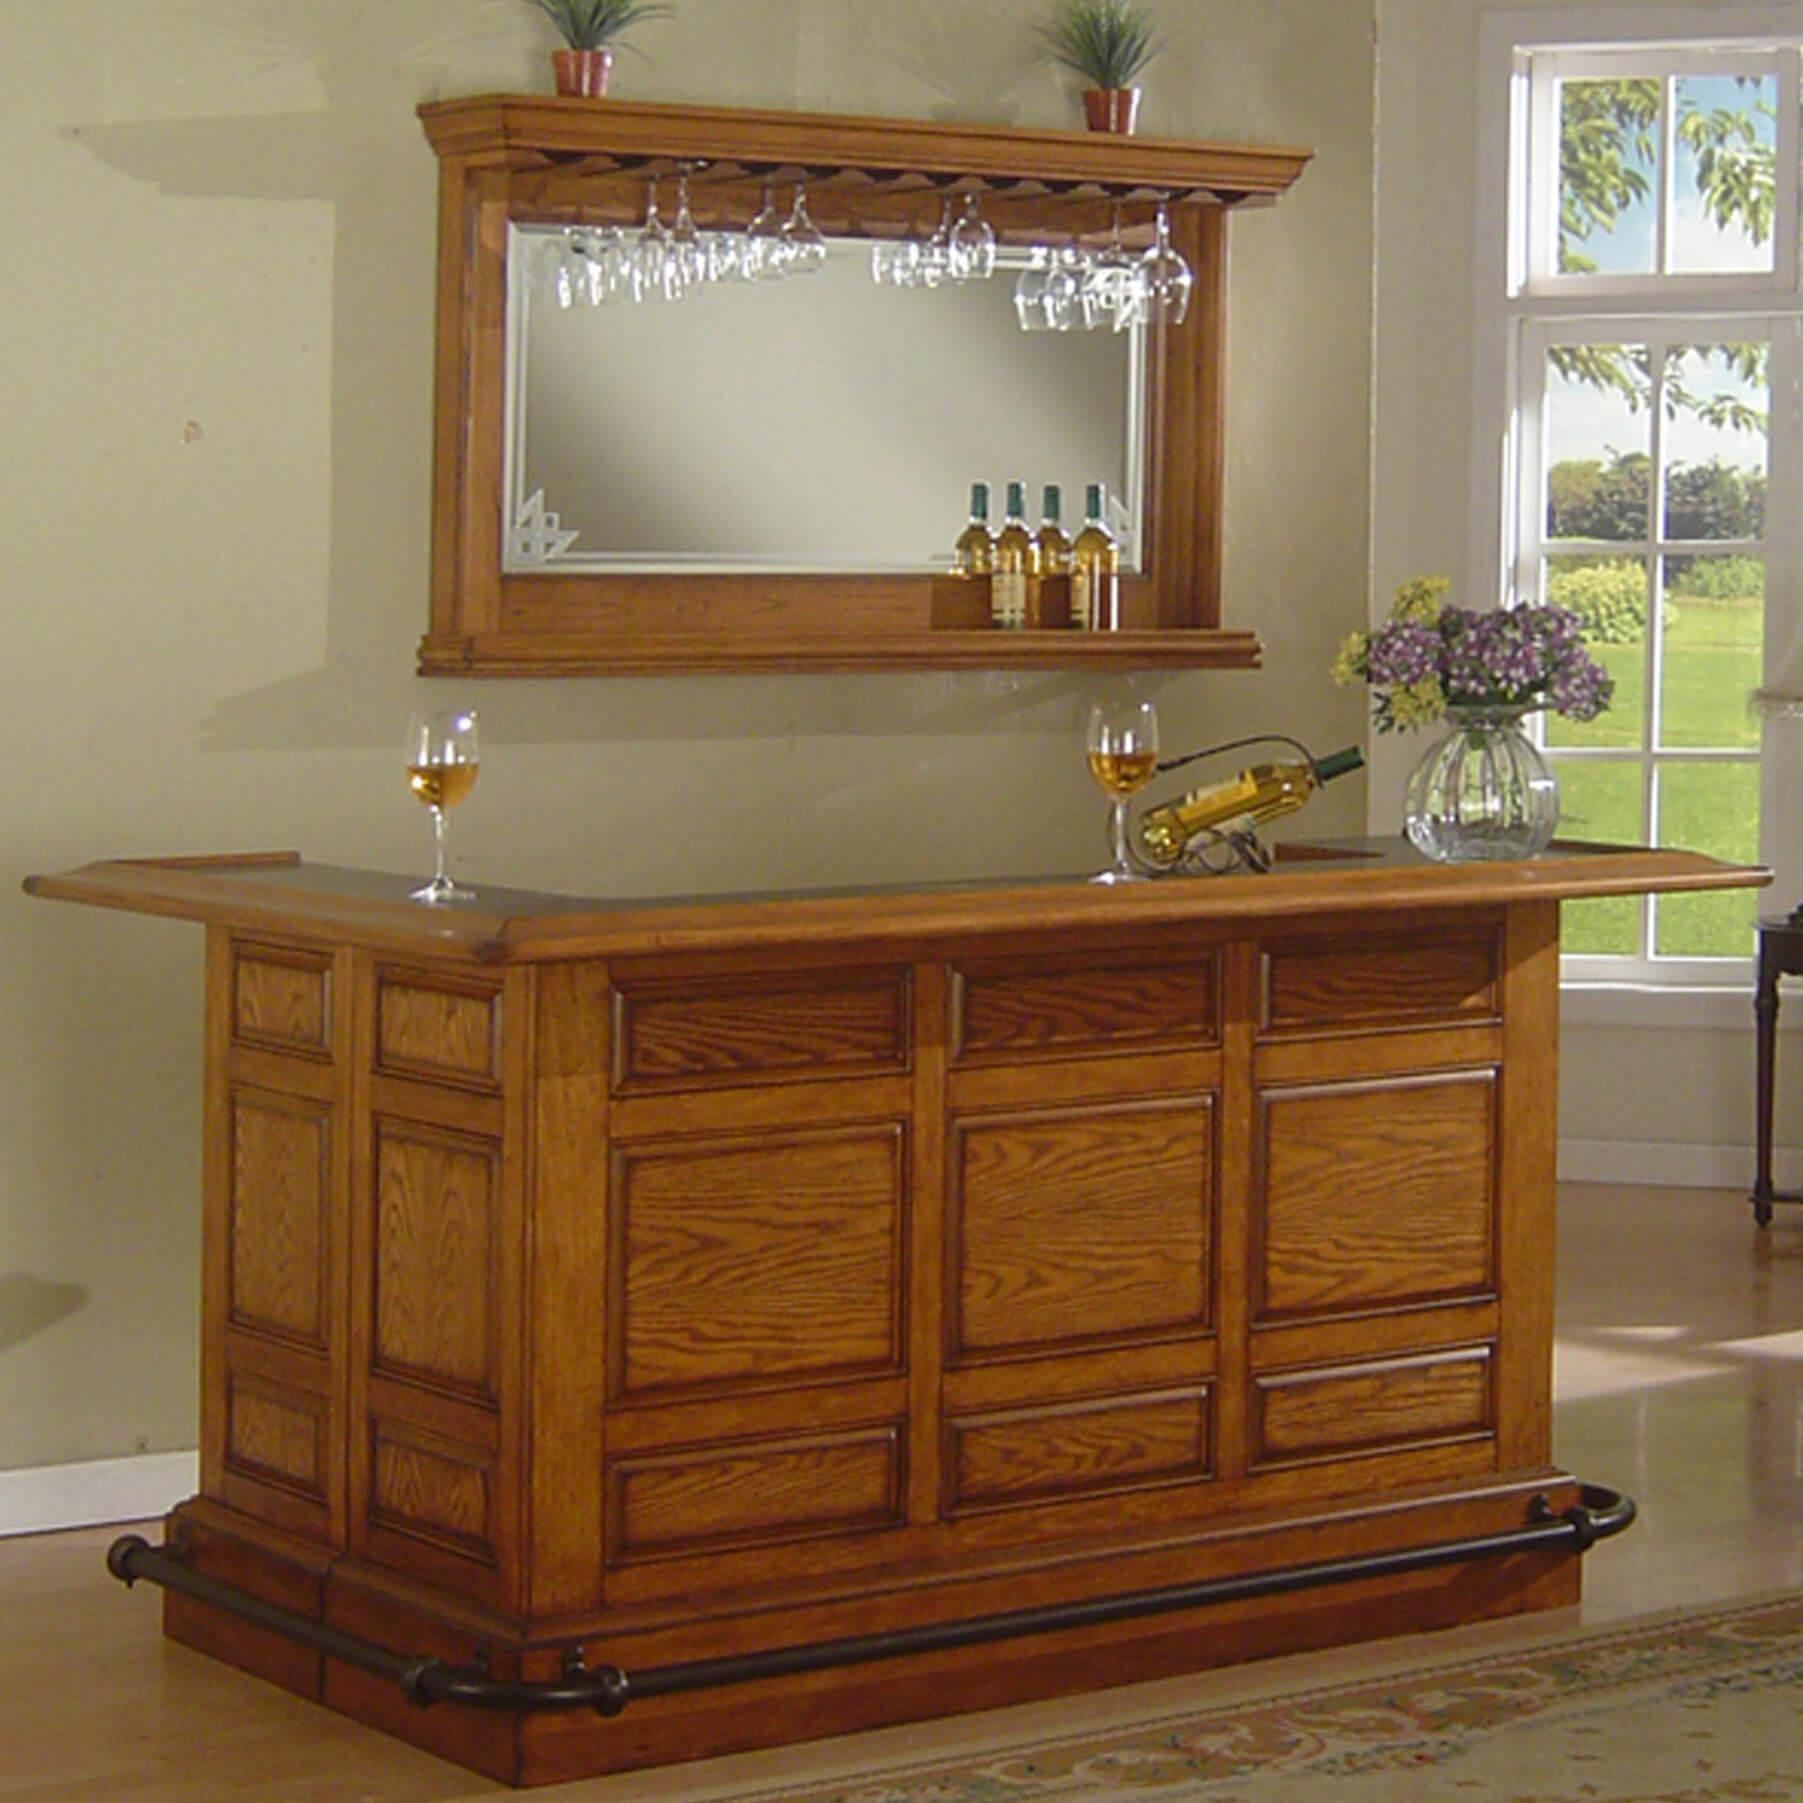 Bon Solid Wood Home Bar With Wrap Around Counter.